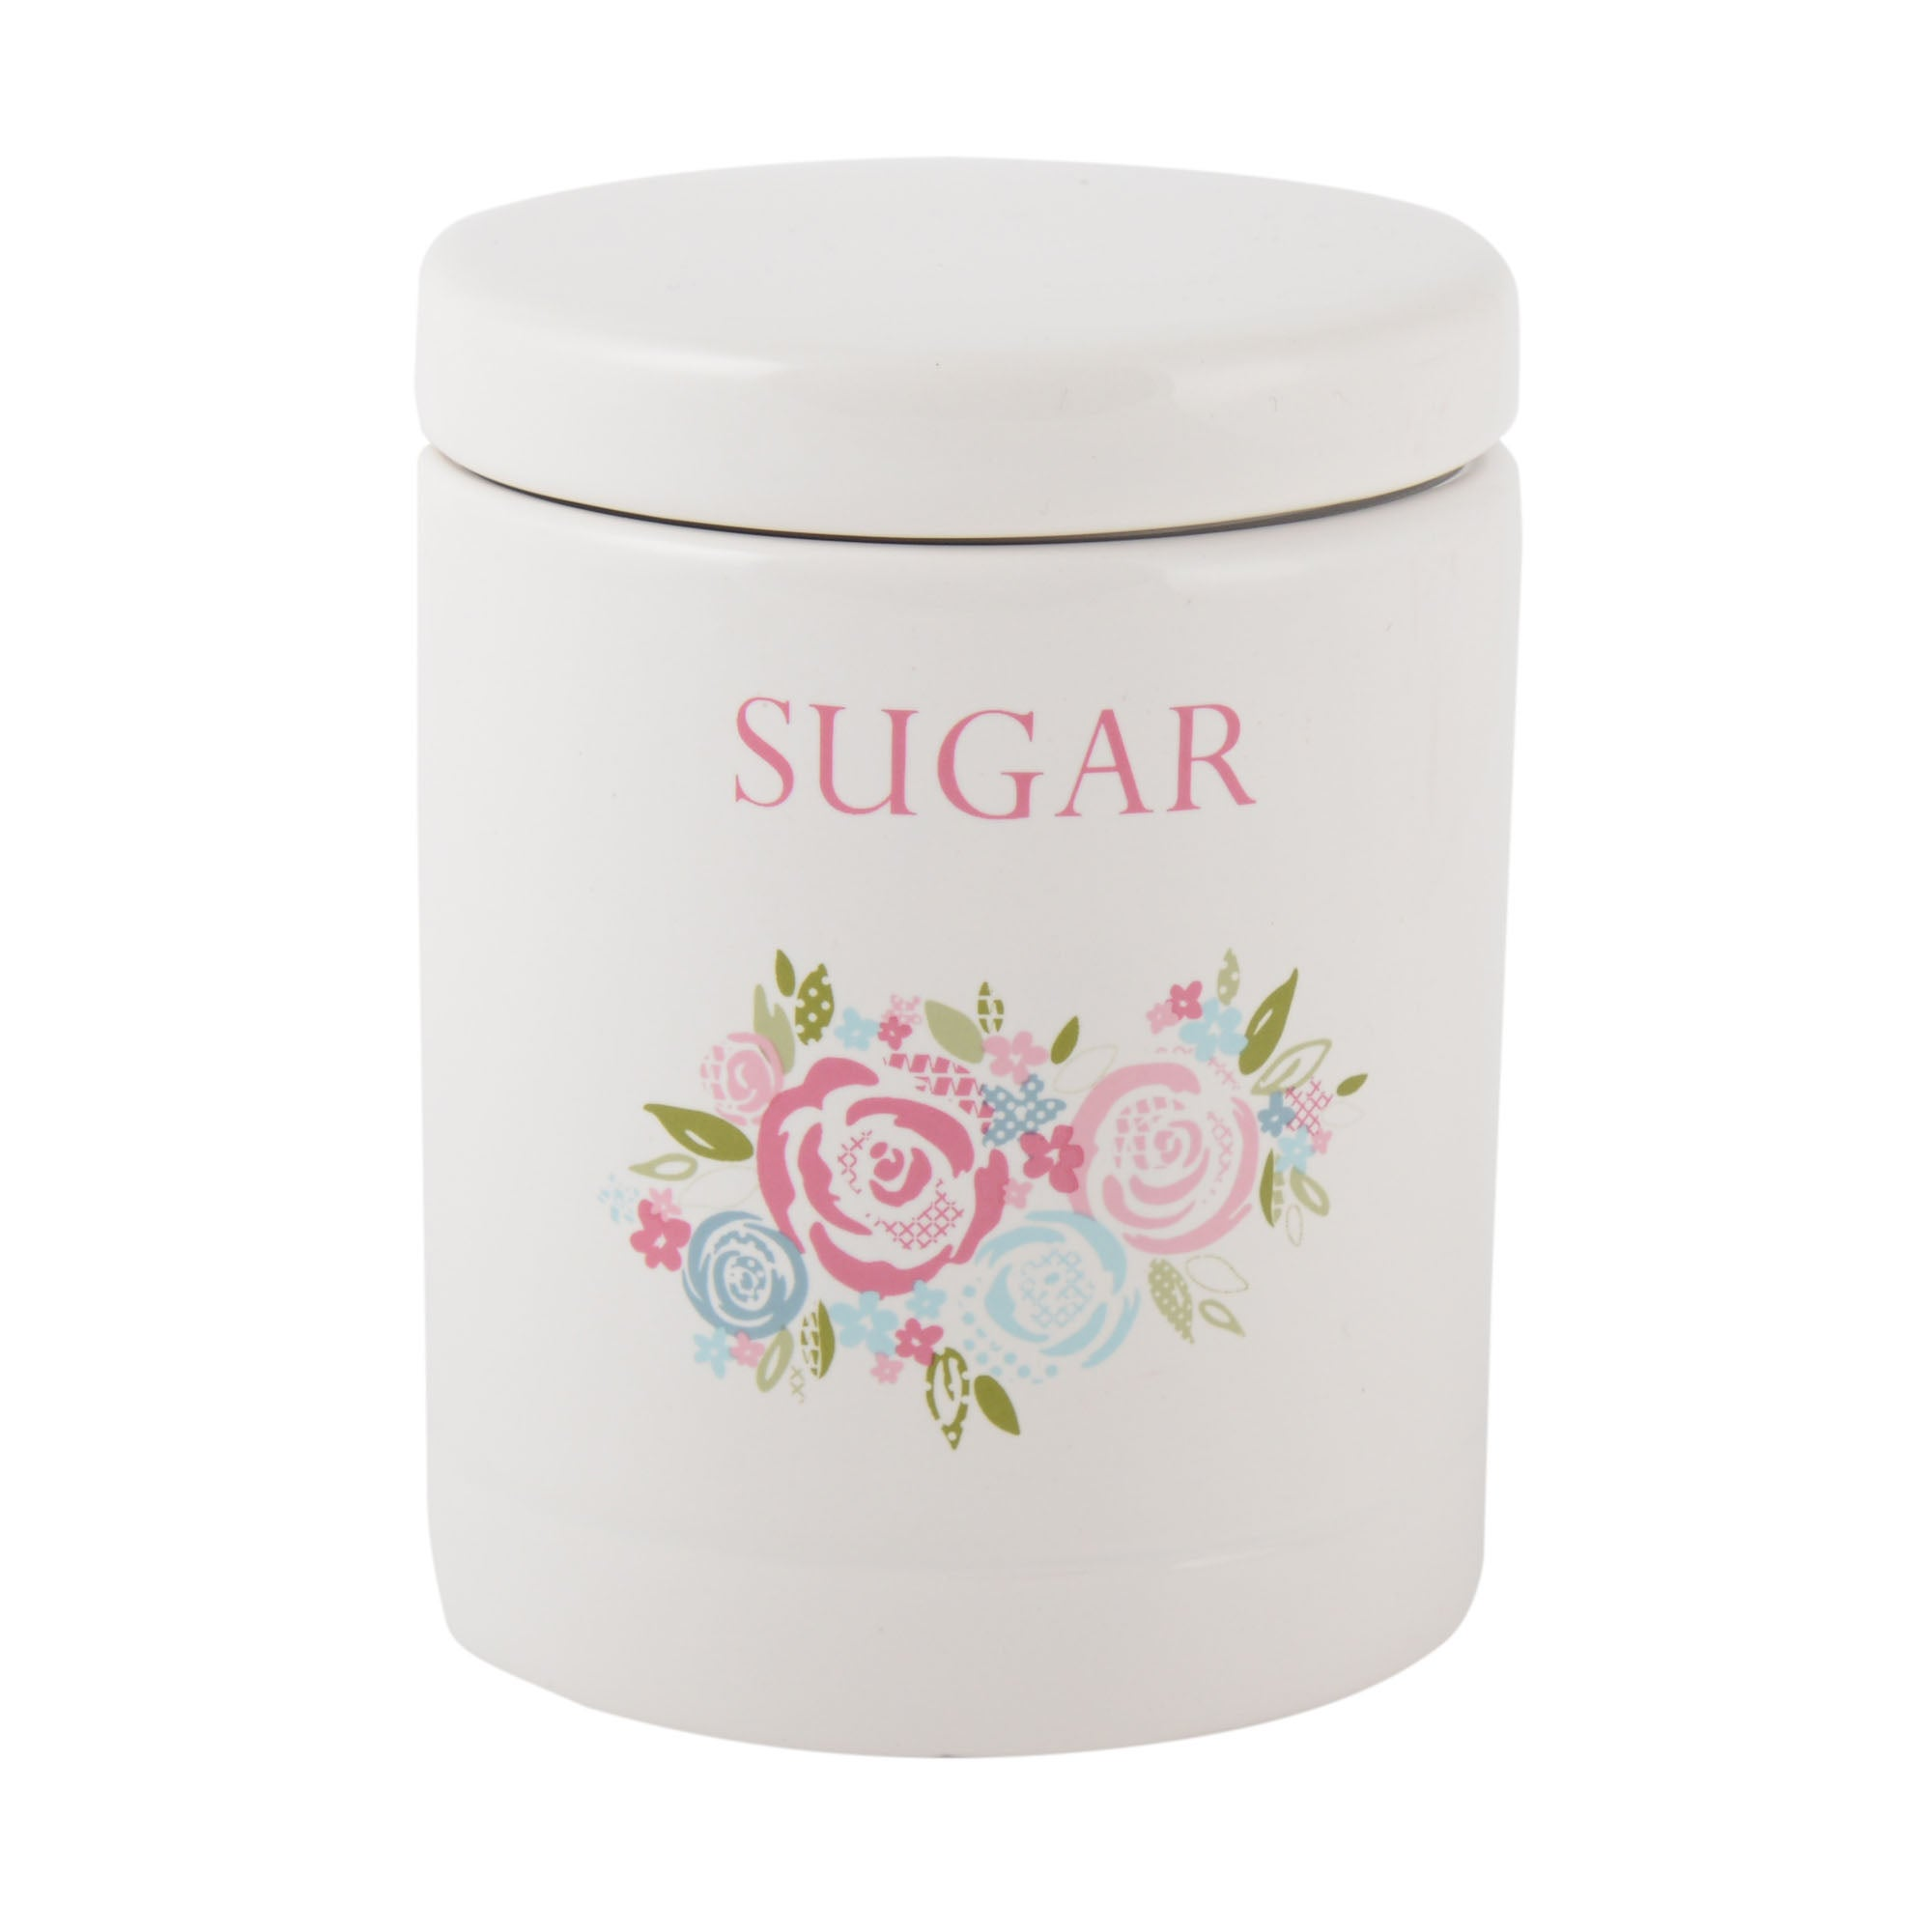 Candy Rose Collection Sugar Storage Jar